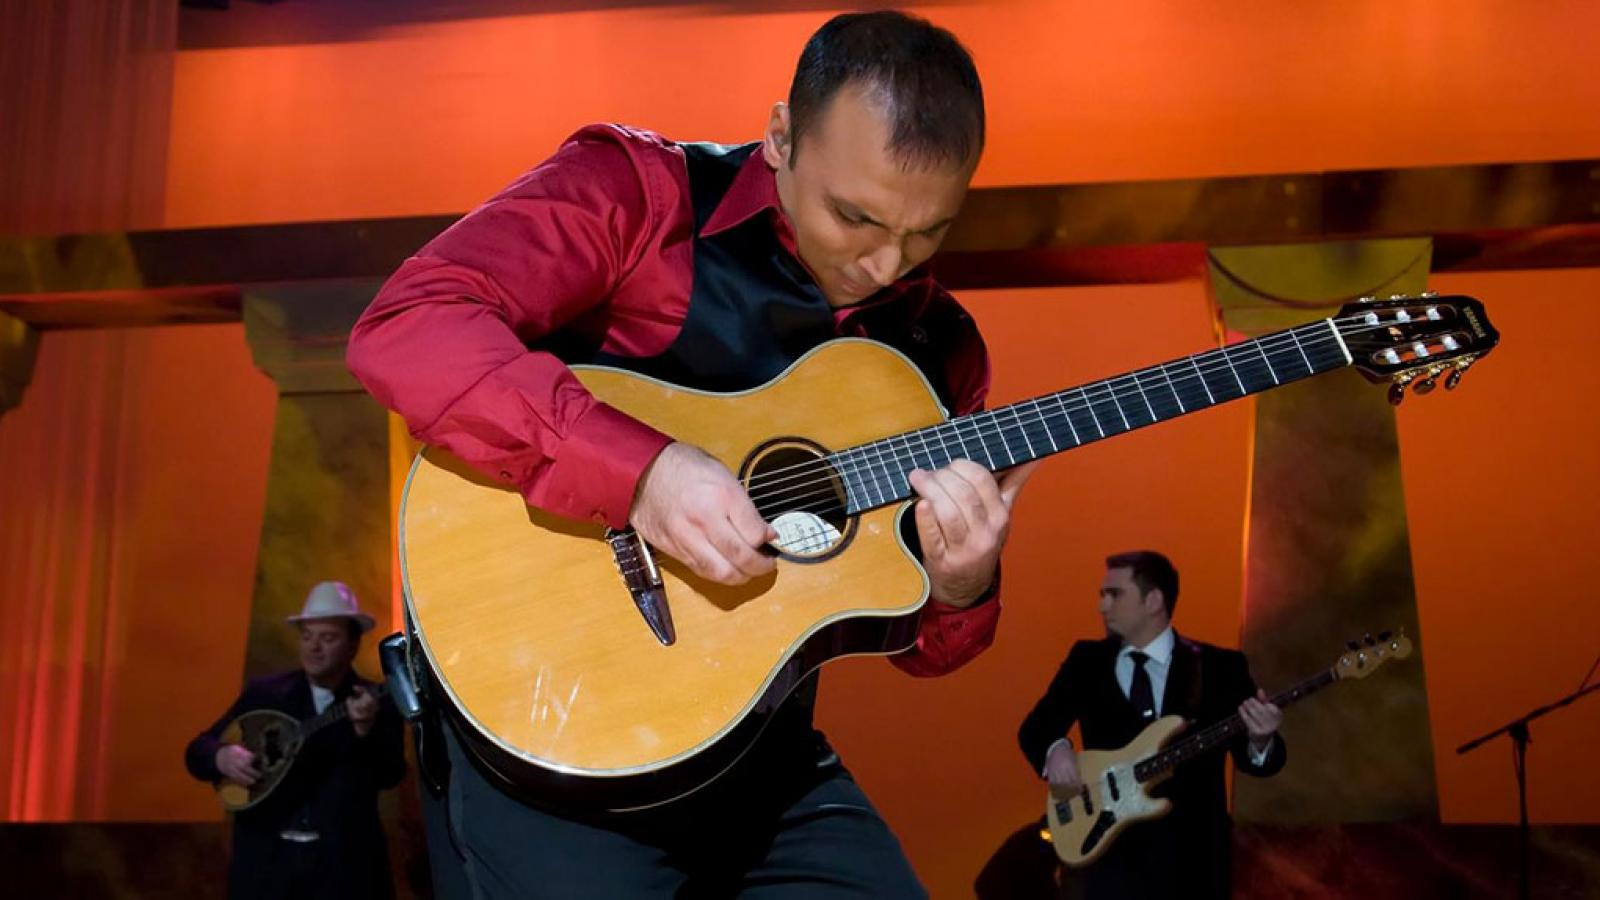 Pavlo in Concert at North Shore Center for the Performing Arts